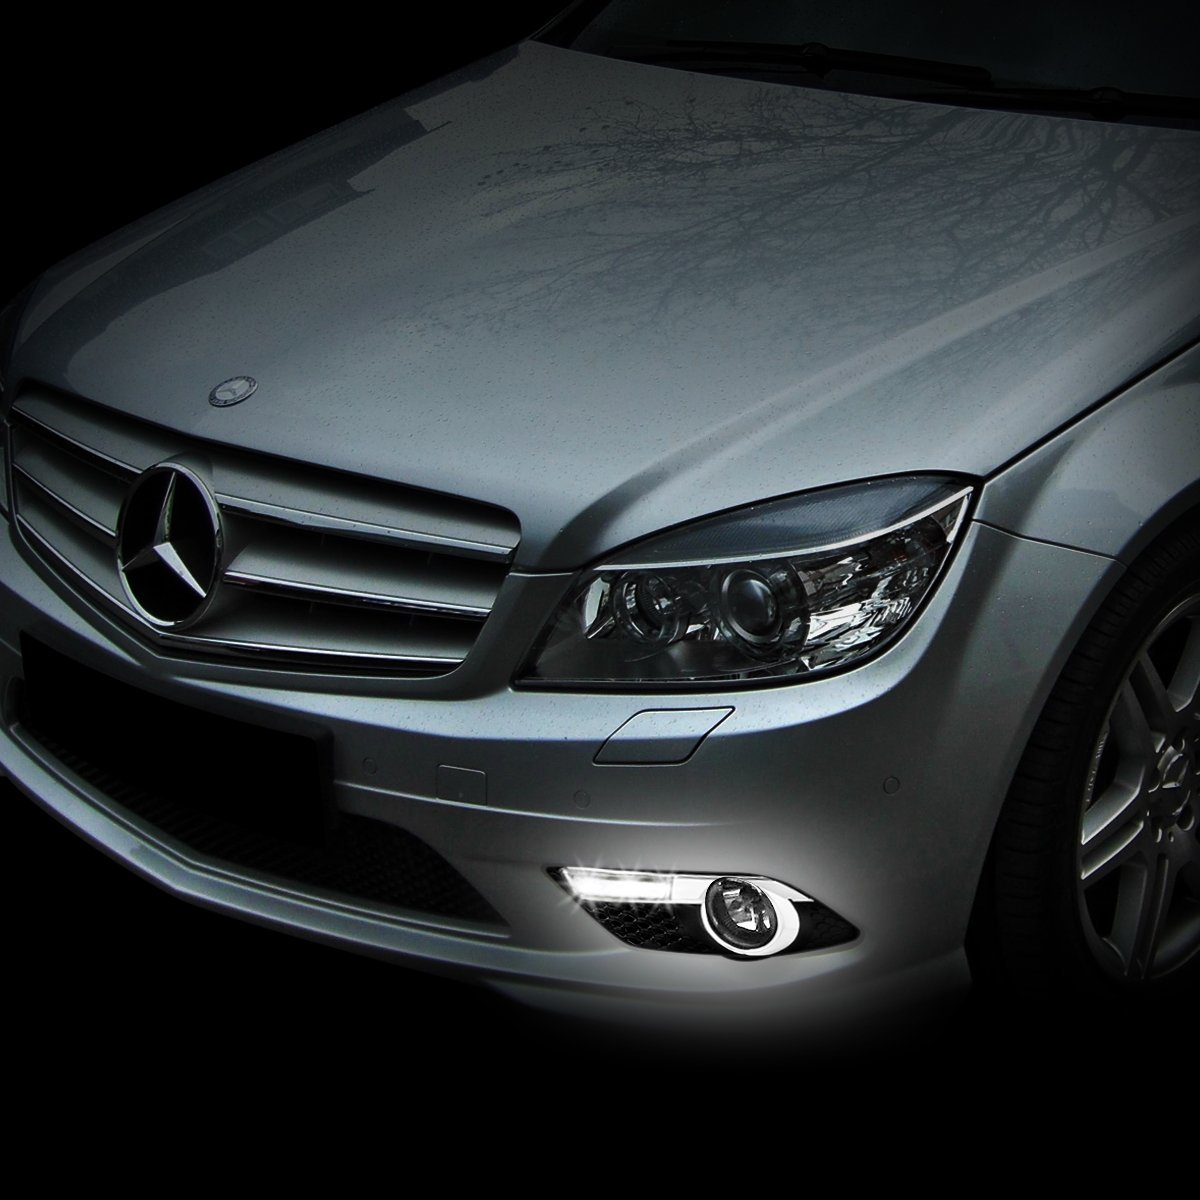 08 10 mercedes benz c300 c350 w amg sport bumper led for Led light for mercedes benz